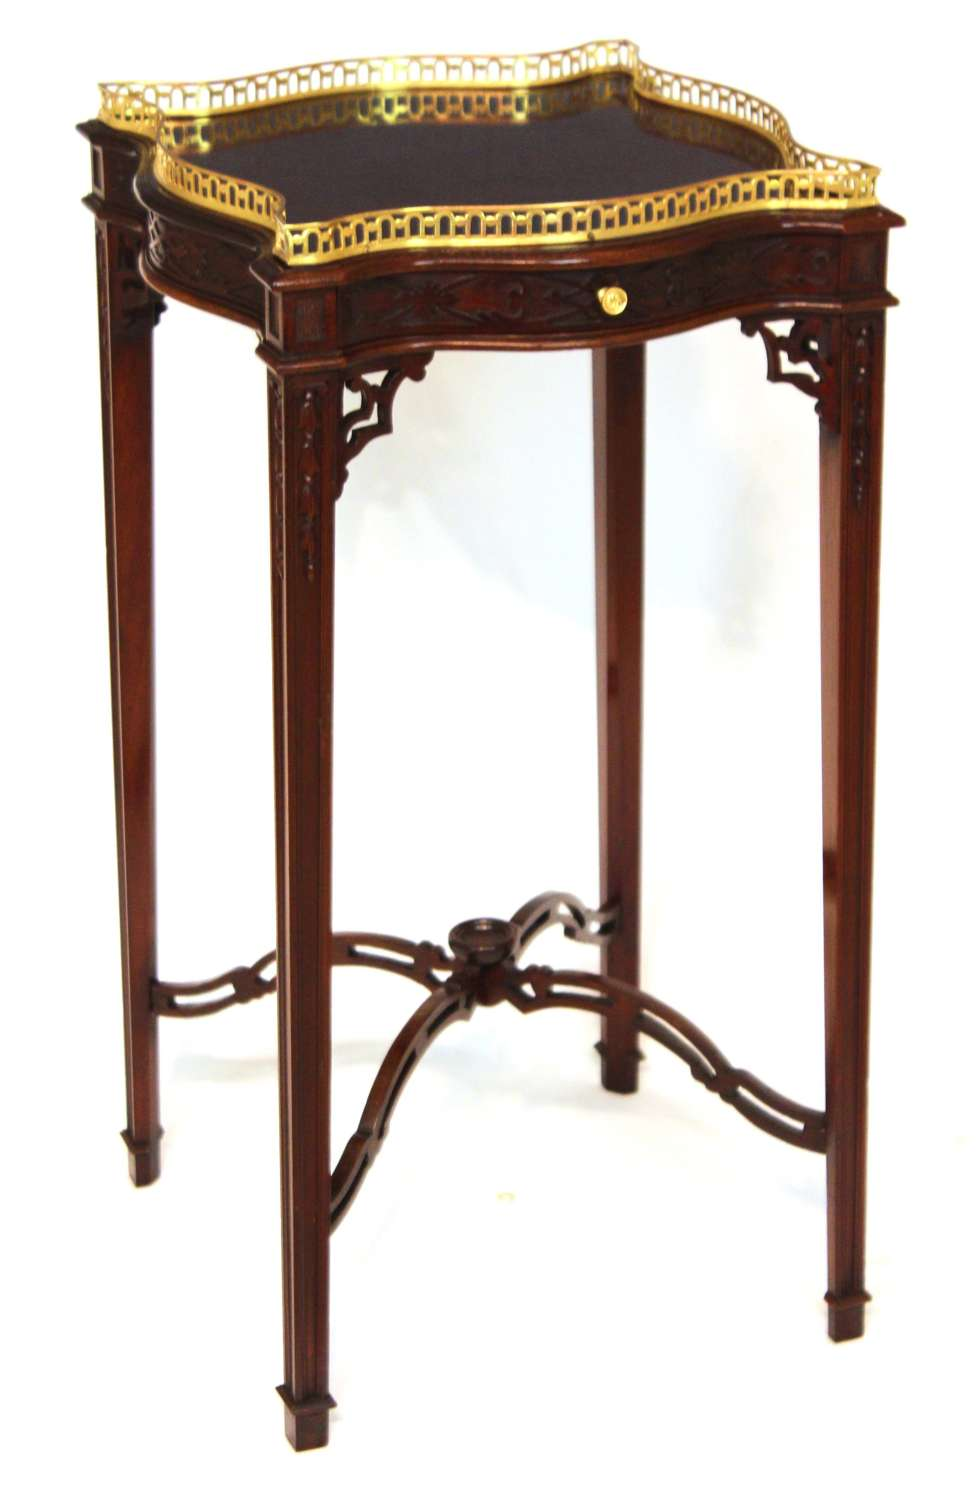 An Exquisite Chippendale Style Victorian Mahogany Kettle Stand